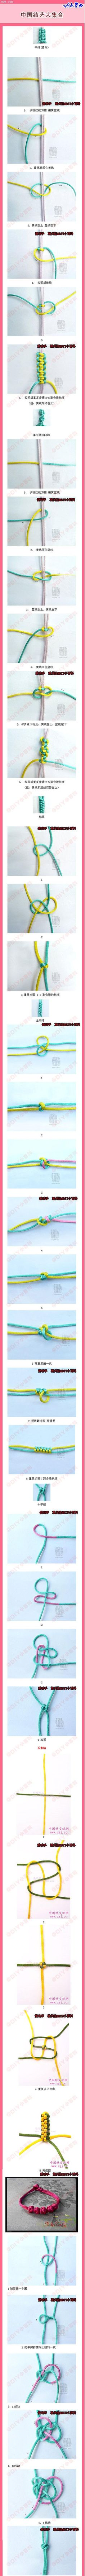 Chinese knot style of play is the total collection.  Transfer from DIY Tips.  [A group balls